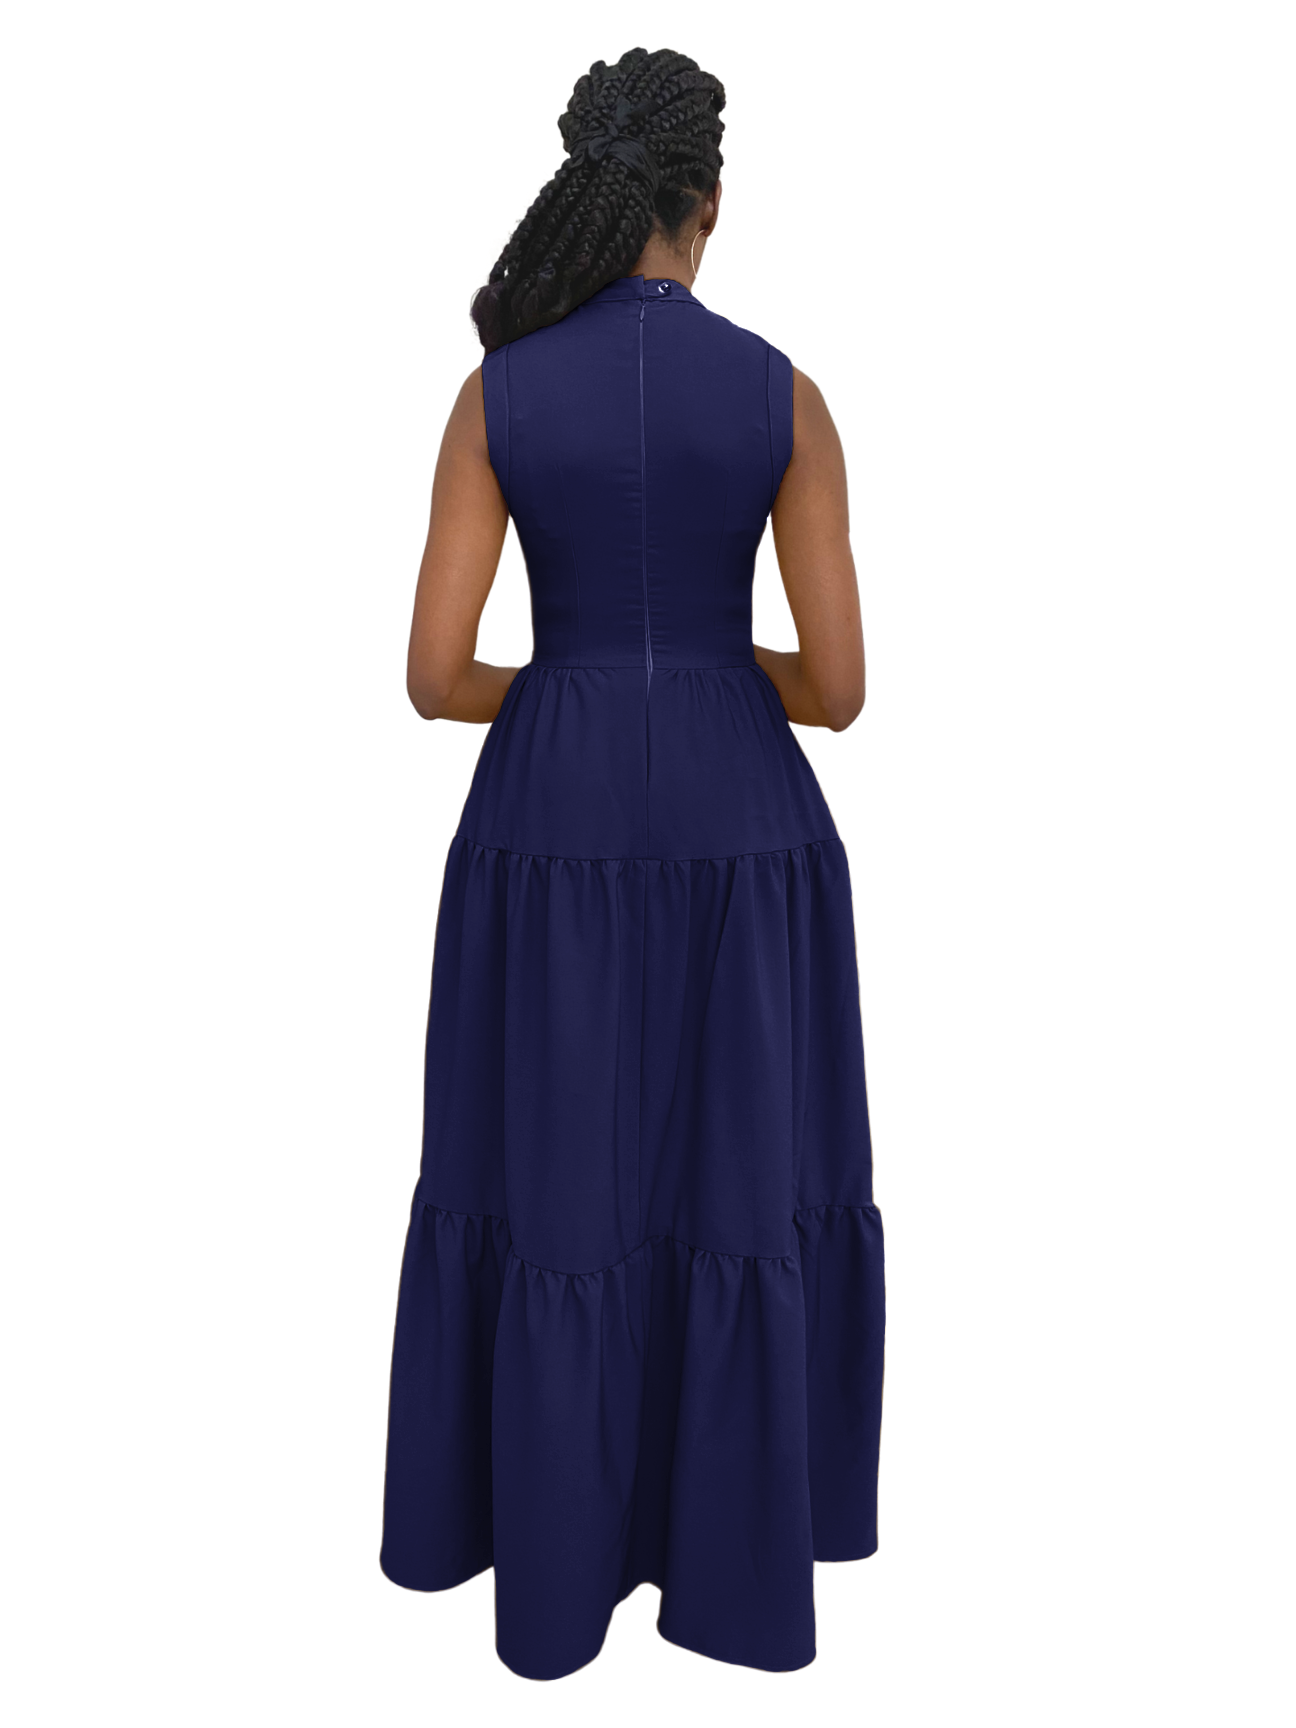 Zina Lite Dress in Navy Blue